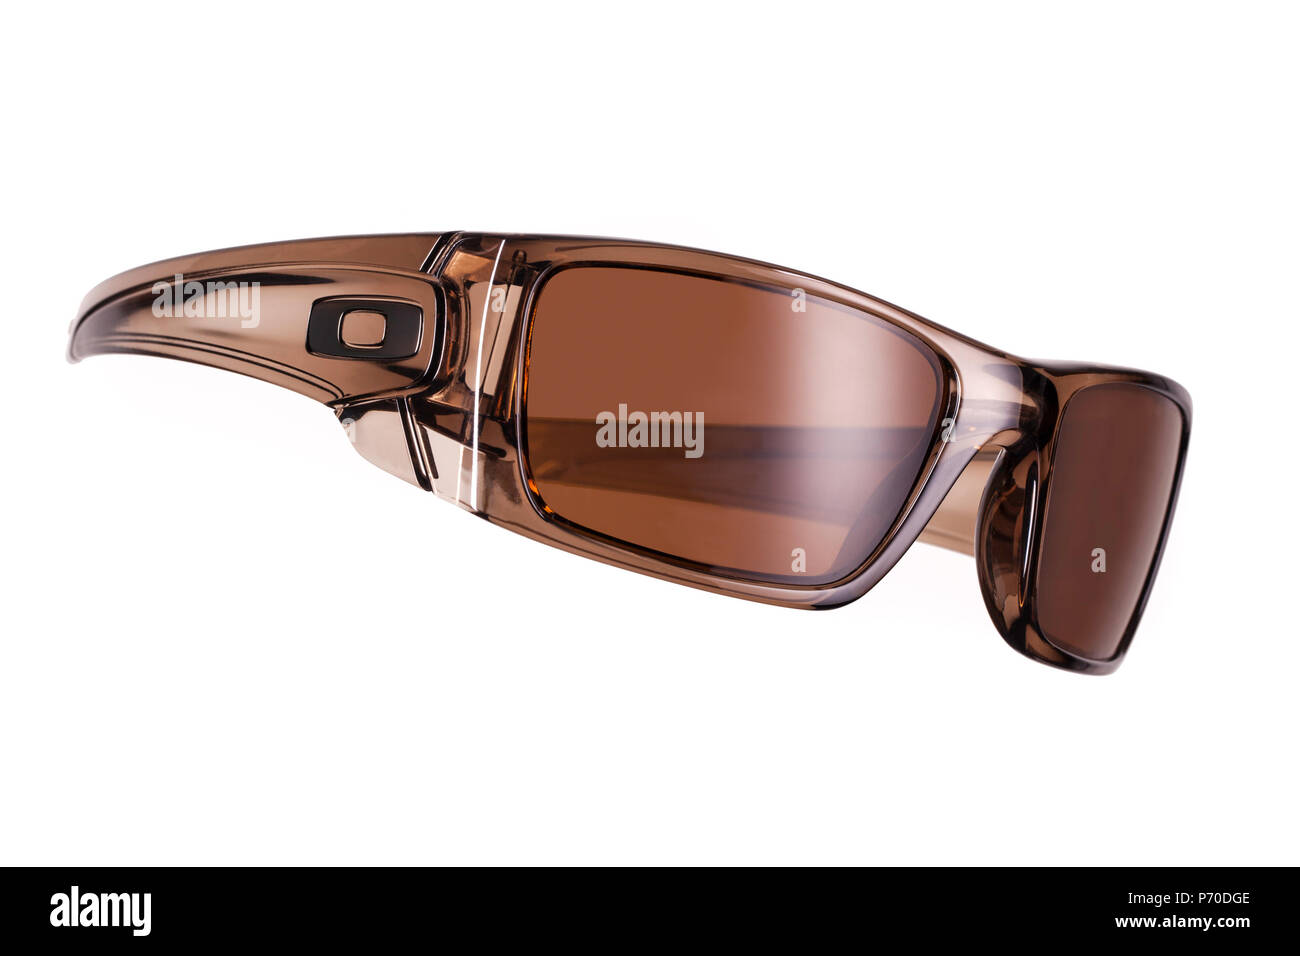 d658db790a Oakley Fuel Cell Brown Smoke sunglasses on a white background - Stock Image